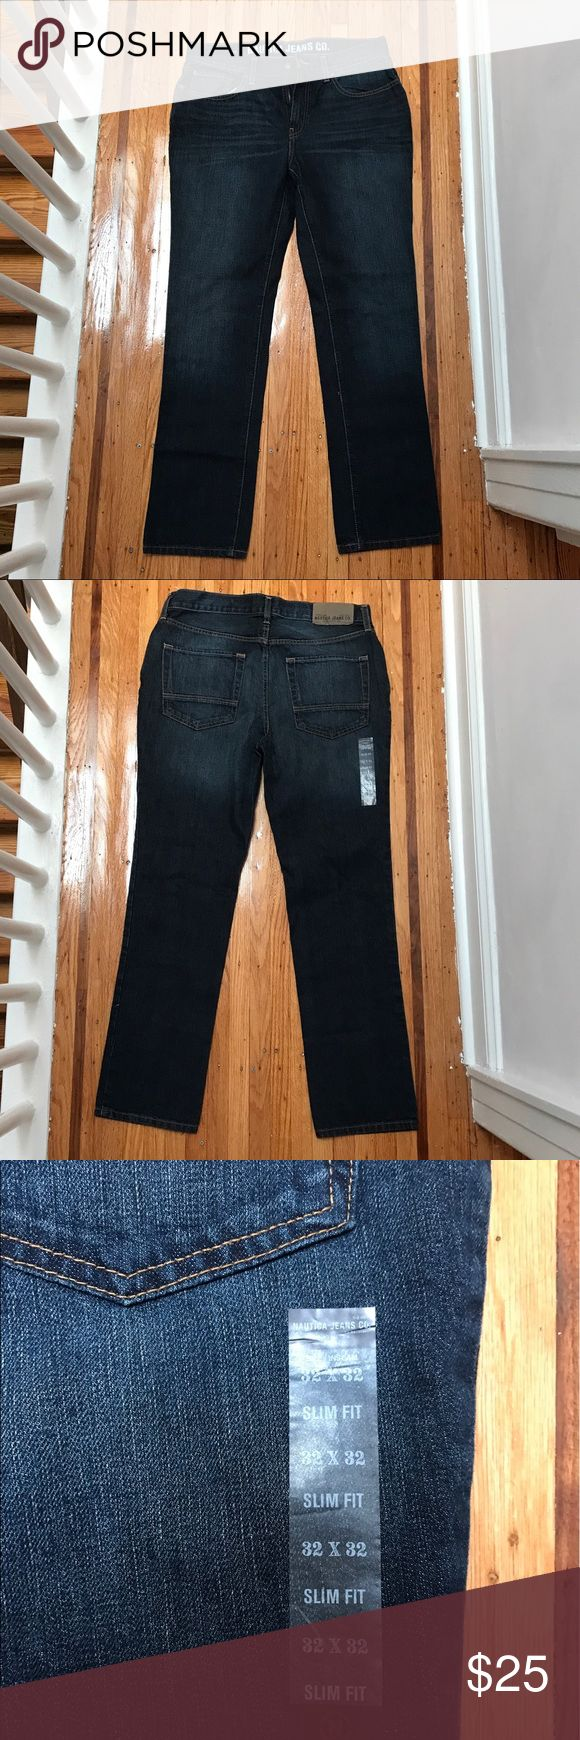 NWOT Nautica Jeans -  Mens Brand new w/o tags Nautica Jeans - men's   Size: 32WX32L Slim fit Medium wash   Father's day coming up 👕 👔👖Perfect to give as a present for birthdays or father's day! Comes from pet free/smoke free environment. Check out my other men's items! ✨Bundle to save ✨ Nautica Jeans Slim